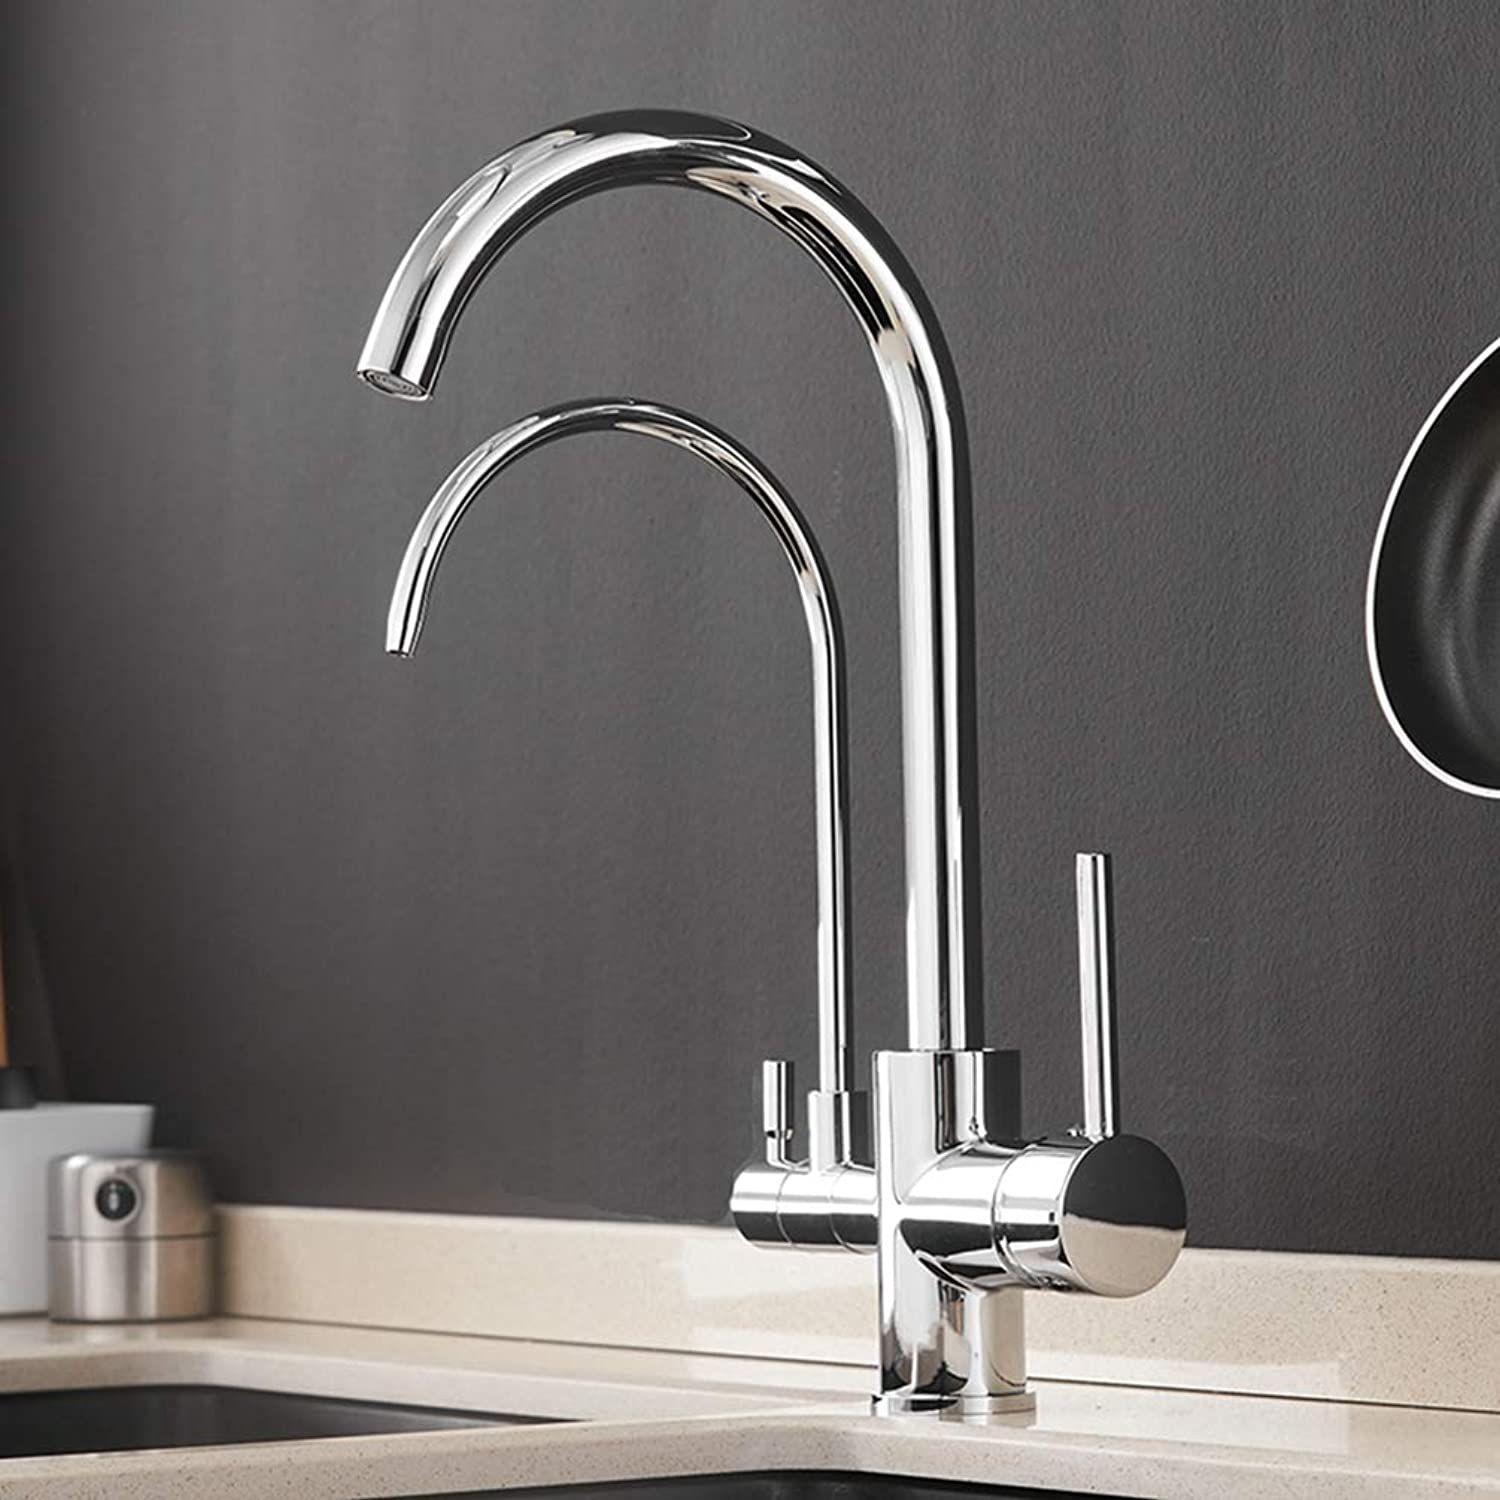 FZHLR Filter Kitchen Faucets Water Purification Features Mixer Tap Crane Pure Water, Cold Water and hot Water 3 in 1 Faucet,Chrome